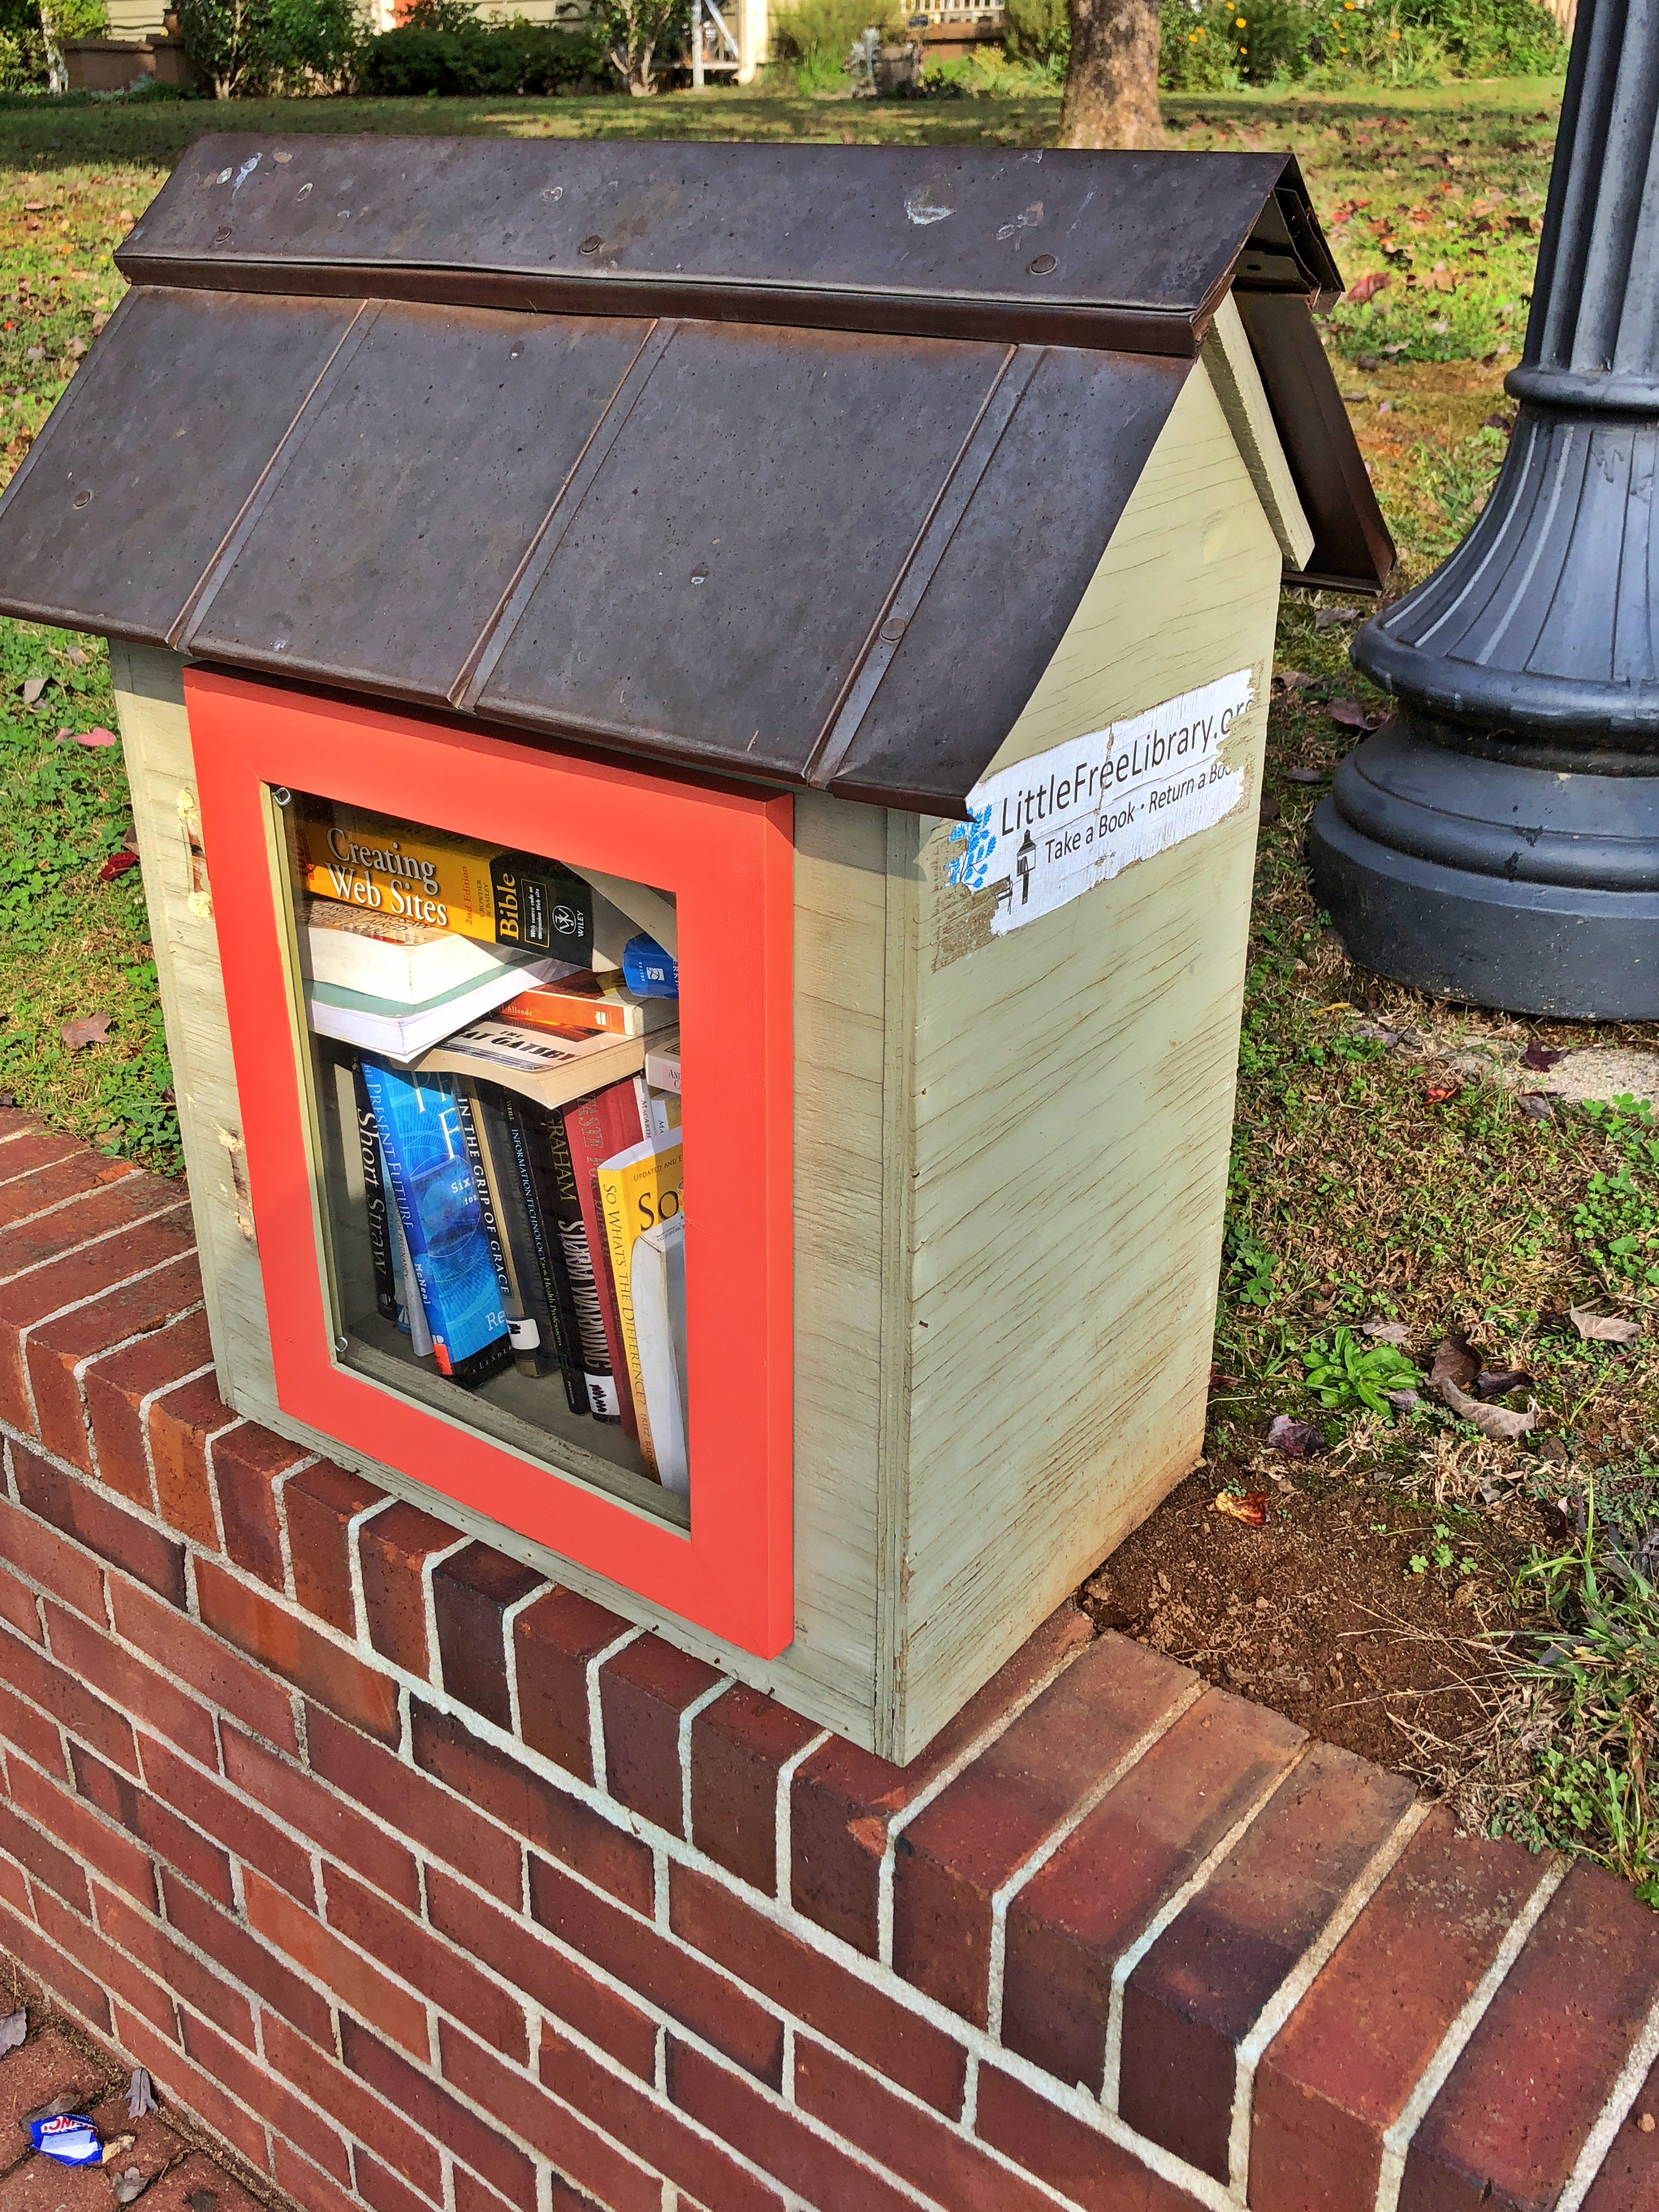 Roswell, GA Free Library